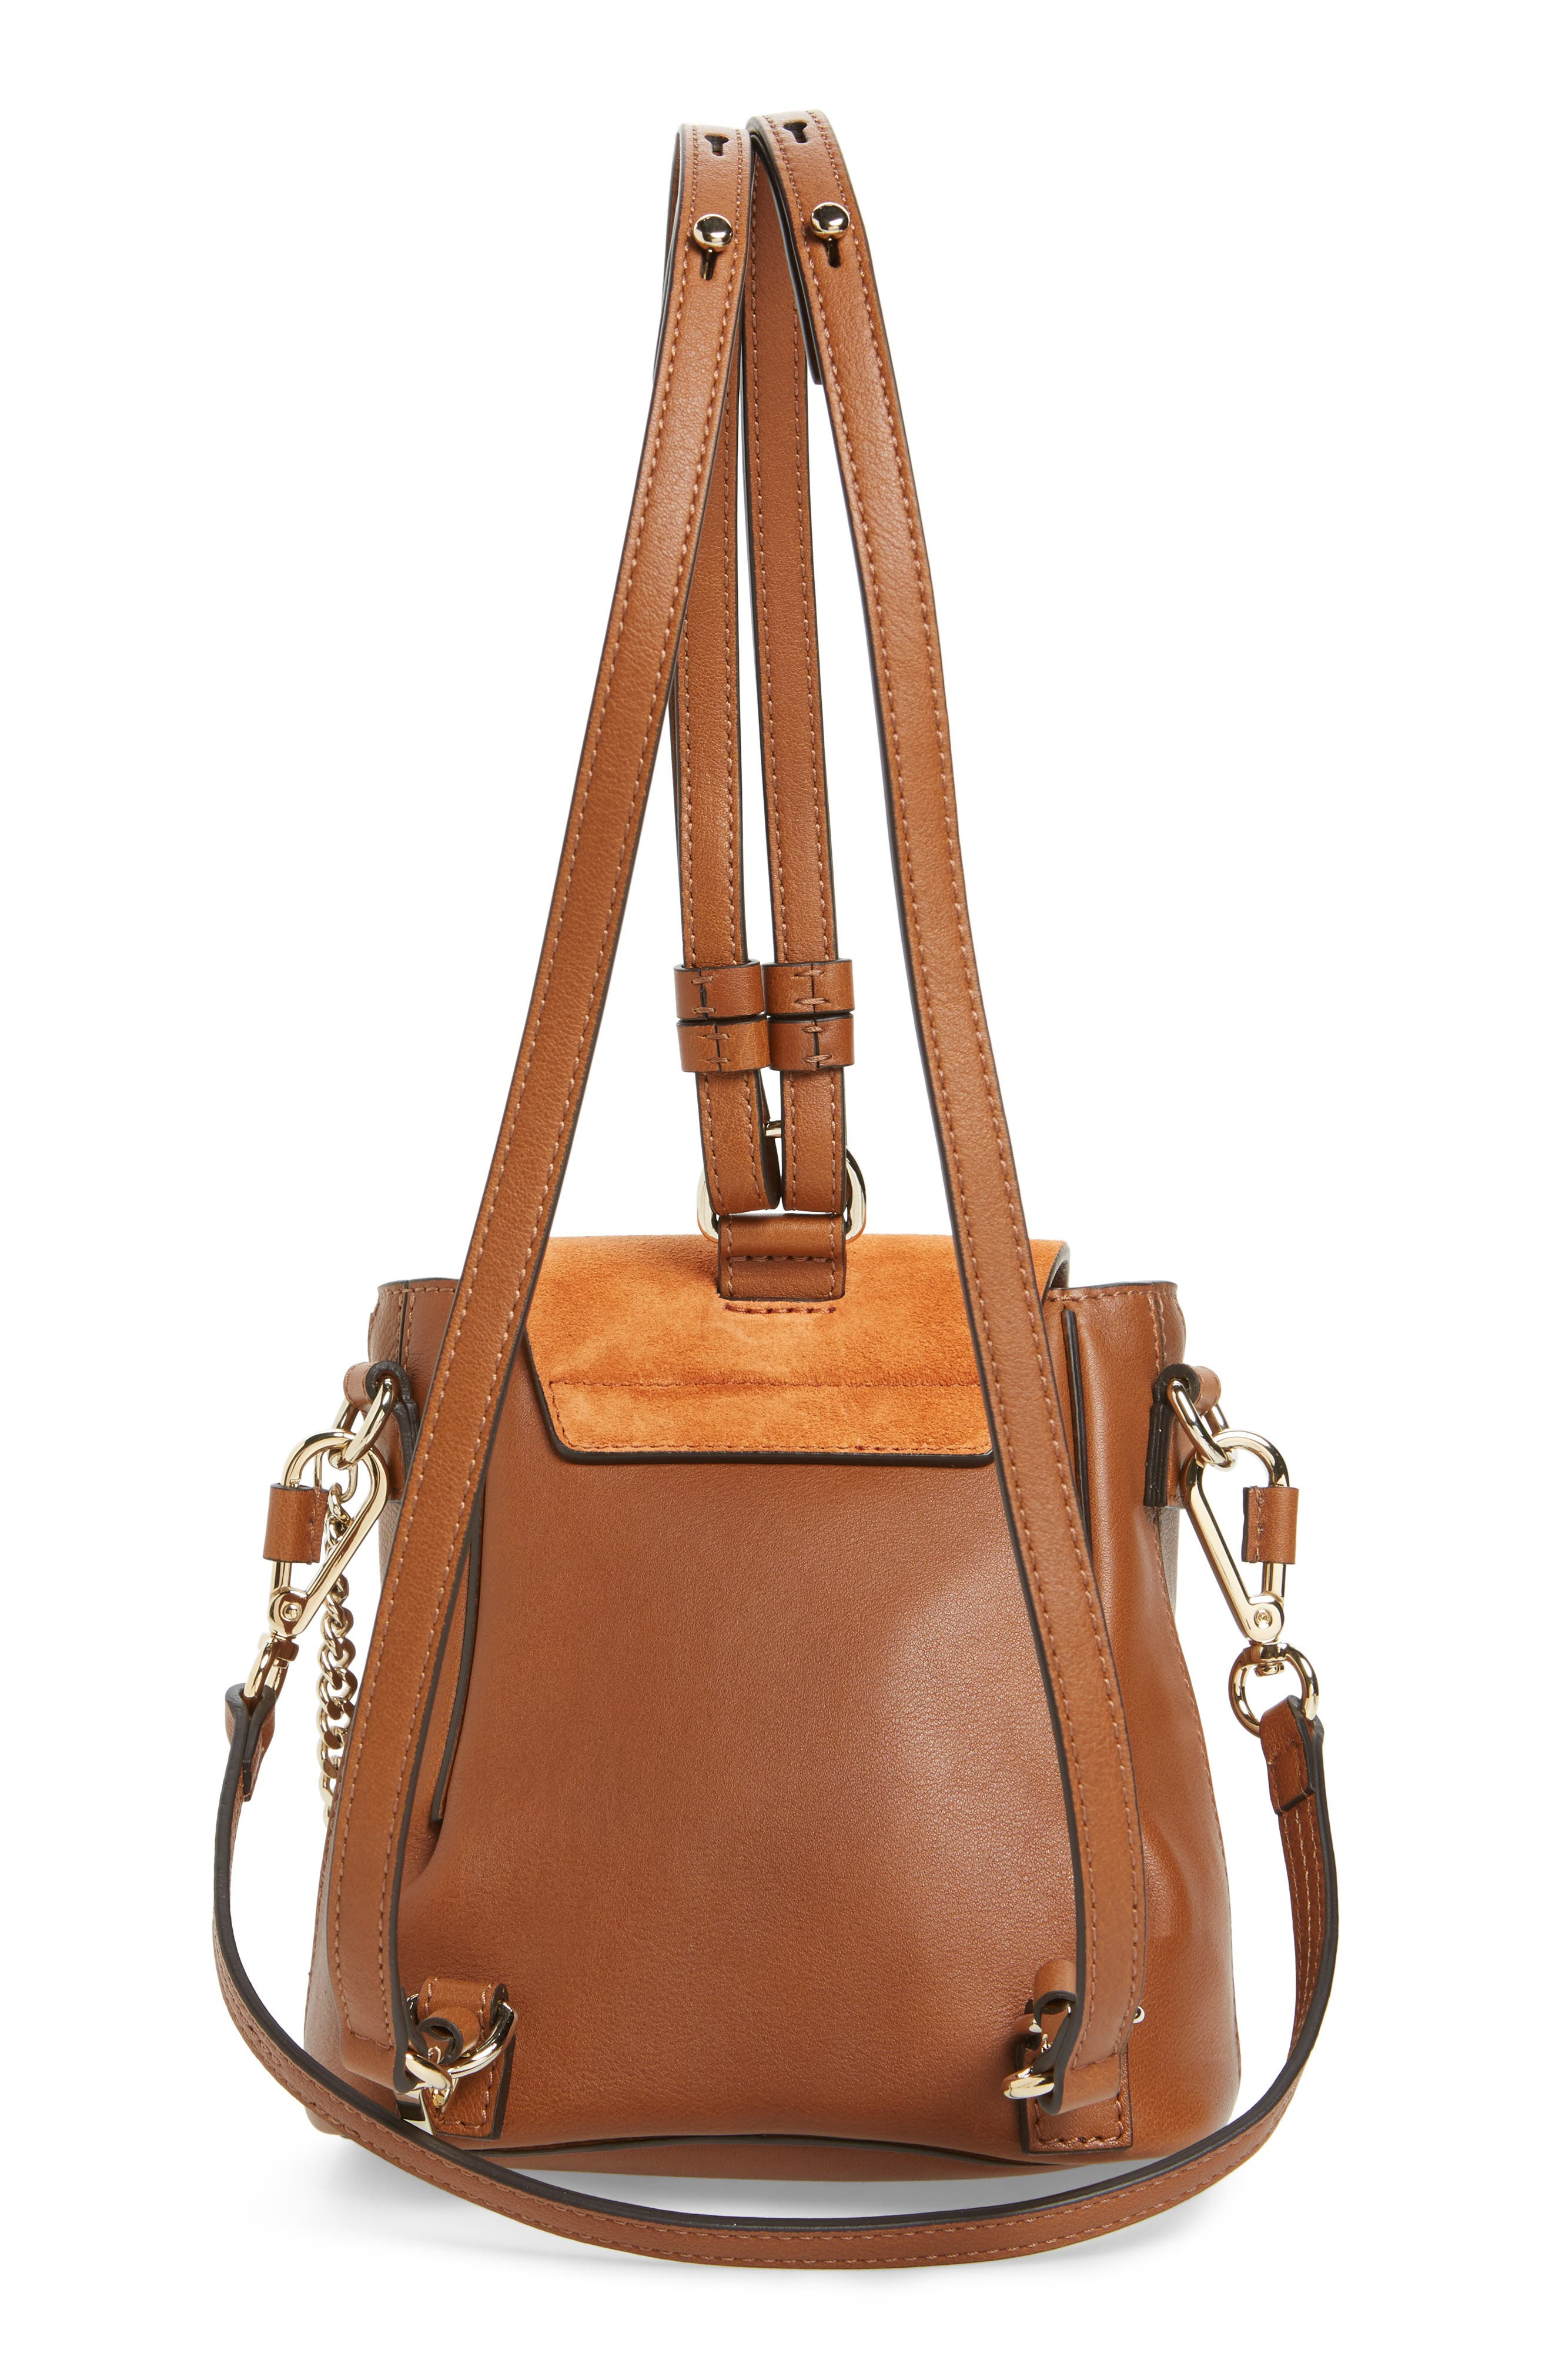 CHLOÉ, Mini Faye Leather & Suede Backpack, Alternate thumbnail 3, color, TAN